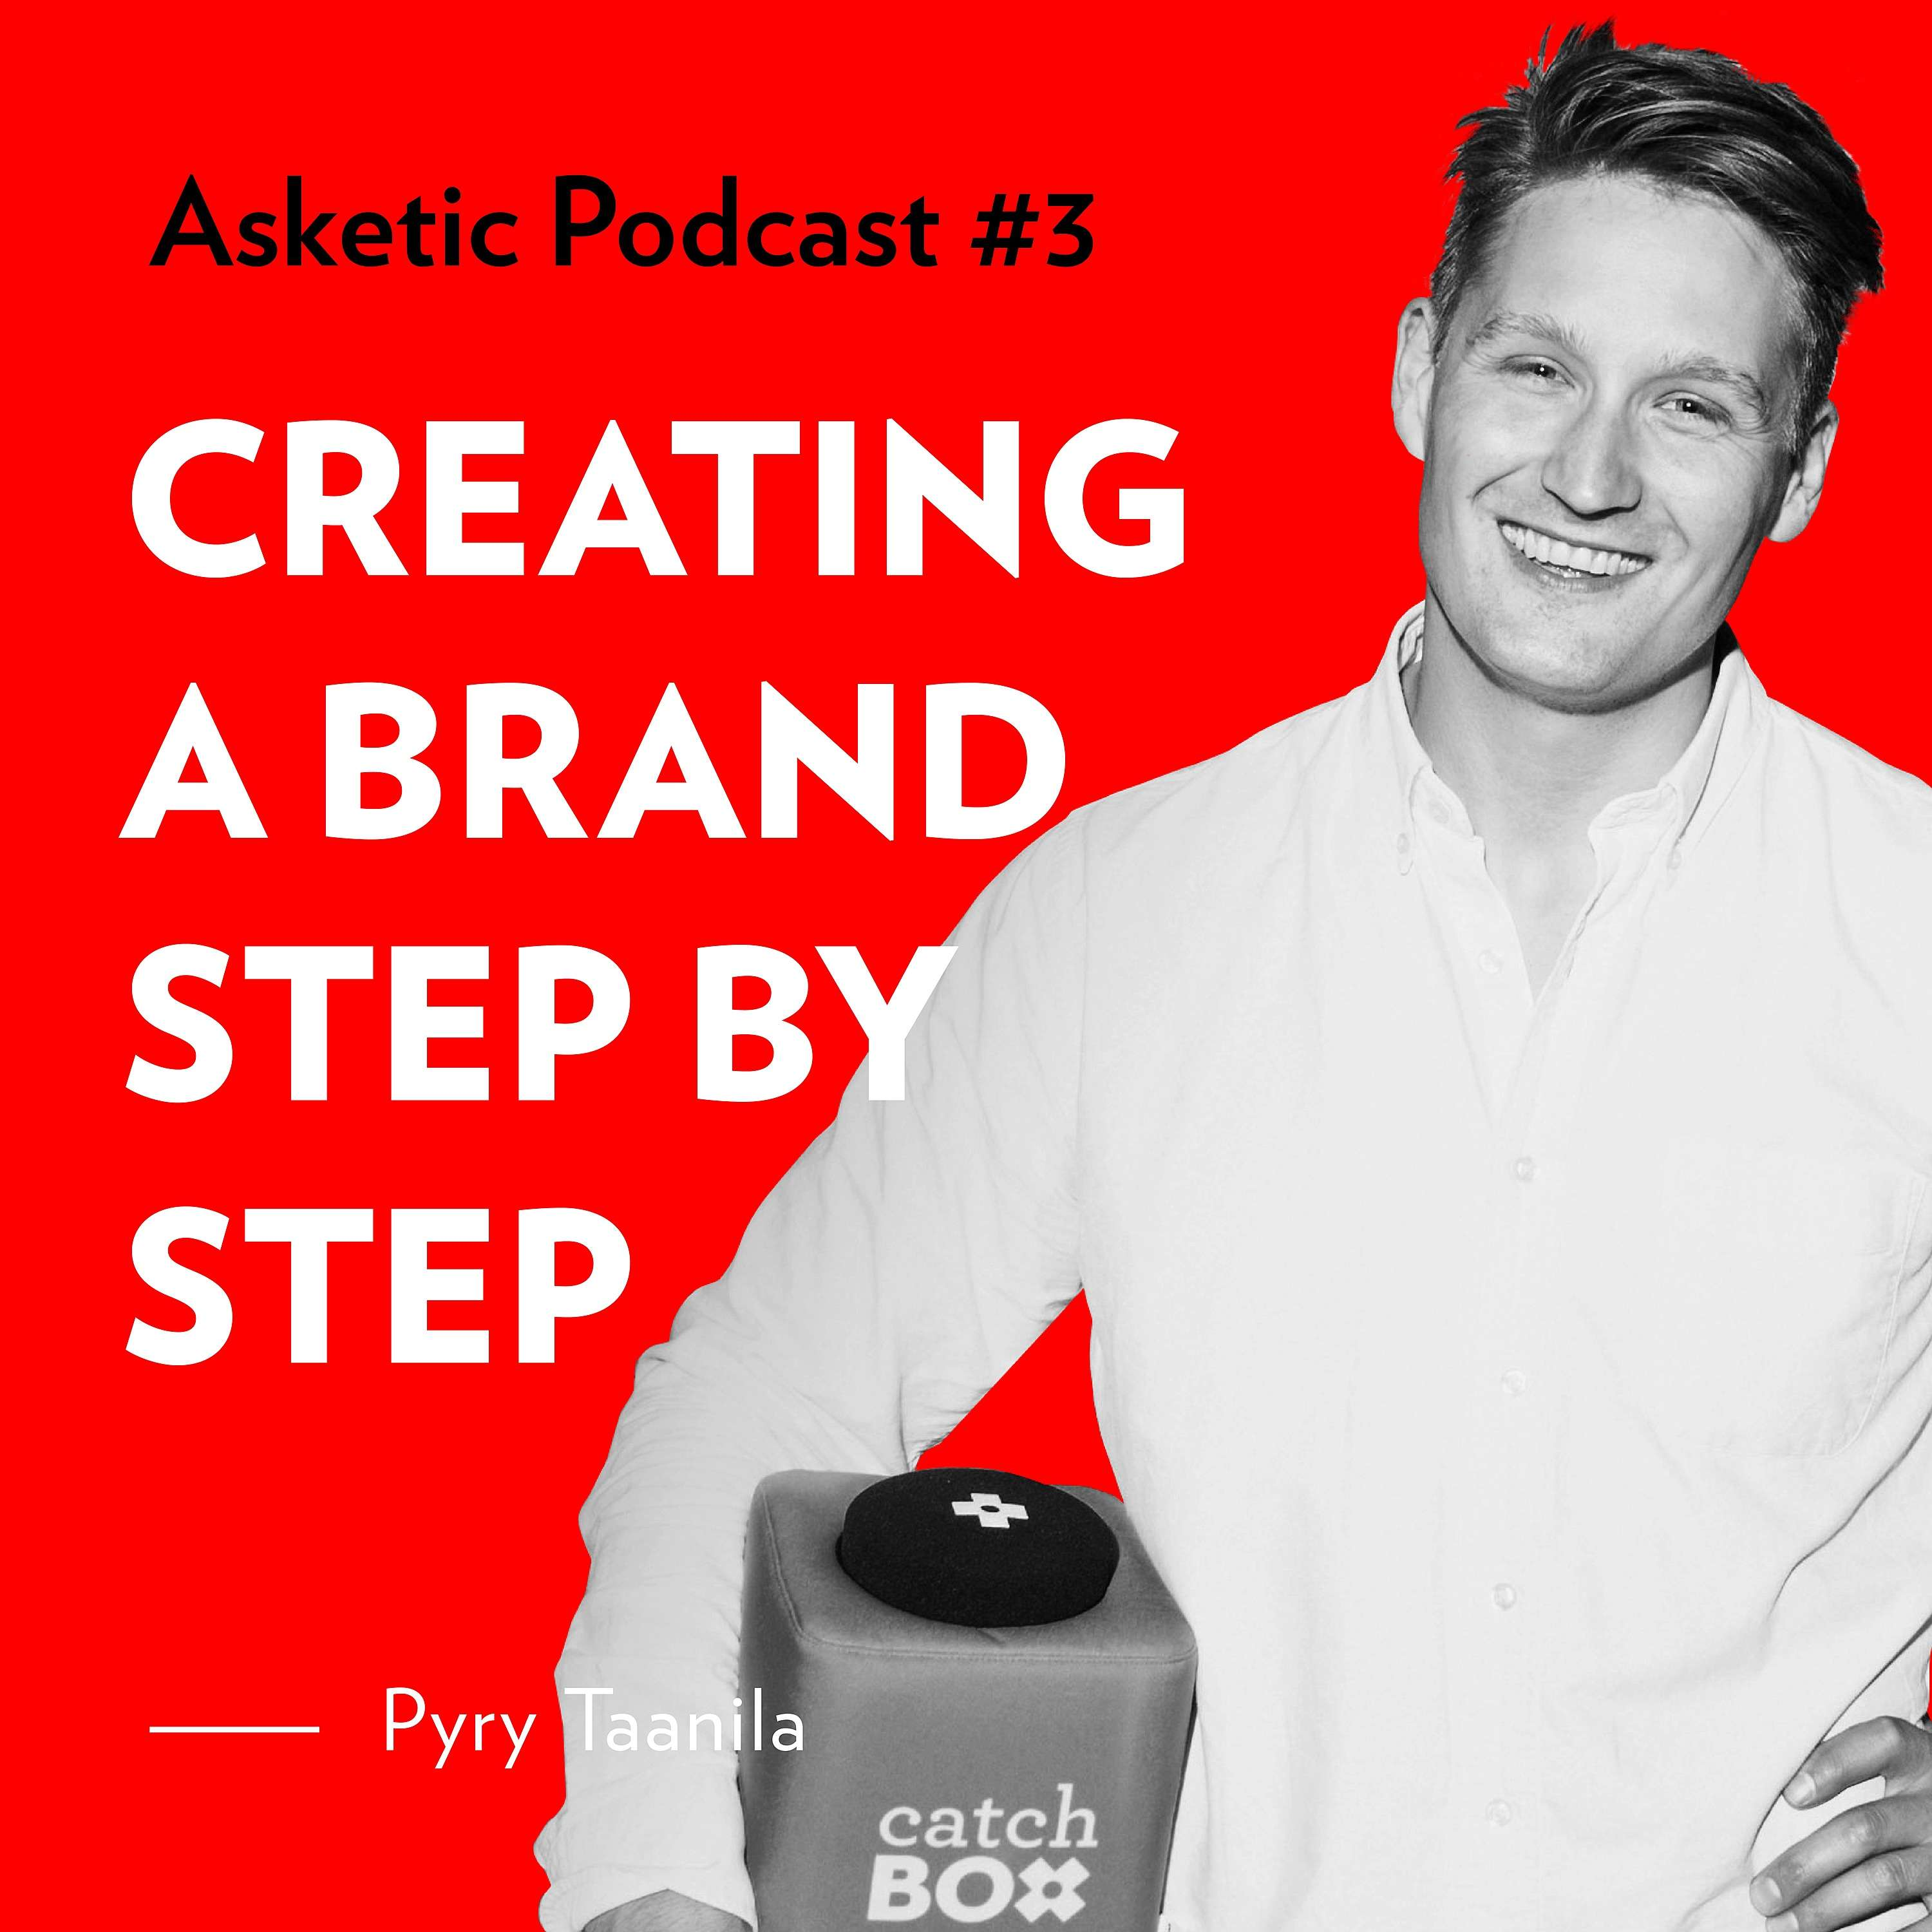 Asketic Podcast #3 Pyry Taanila — Creating a Brand Step by Step